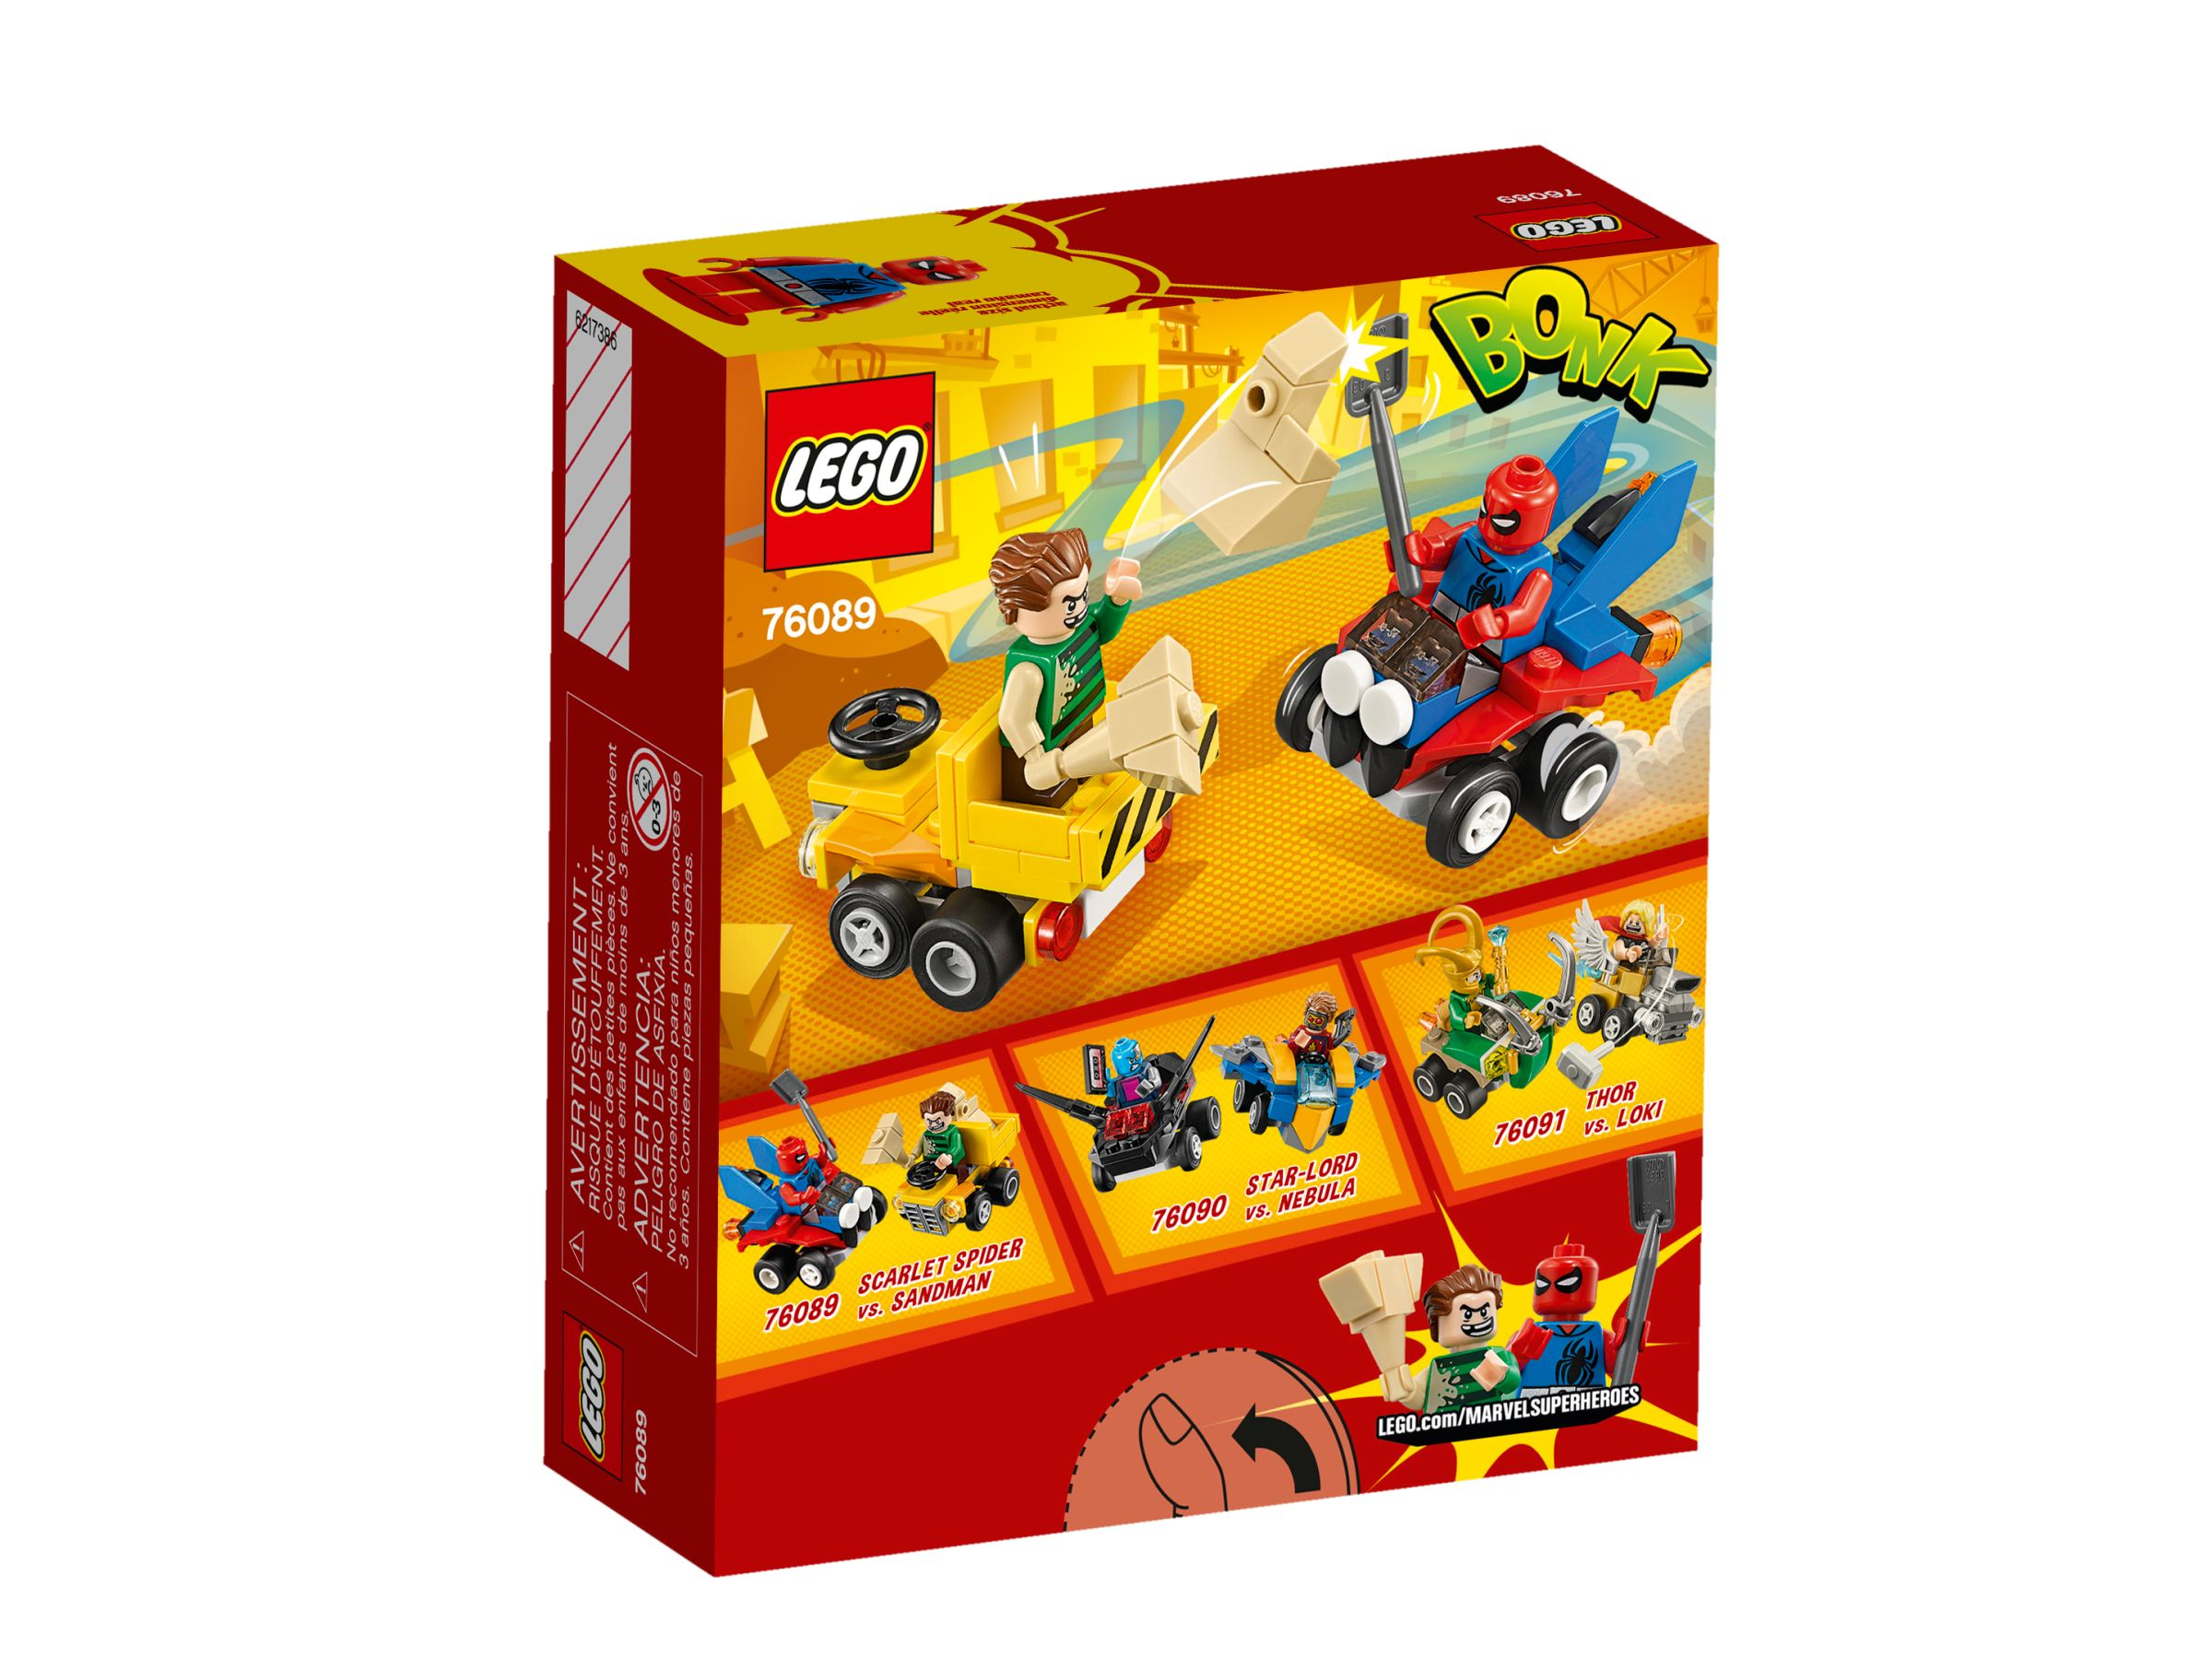 LEGO Super Heroes 76089 Mighty Micros: Spider-Man vs. Sandman LEGO_76089_alt2.jpg